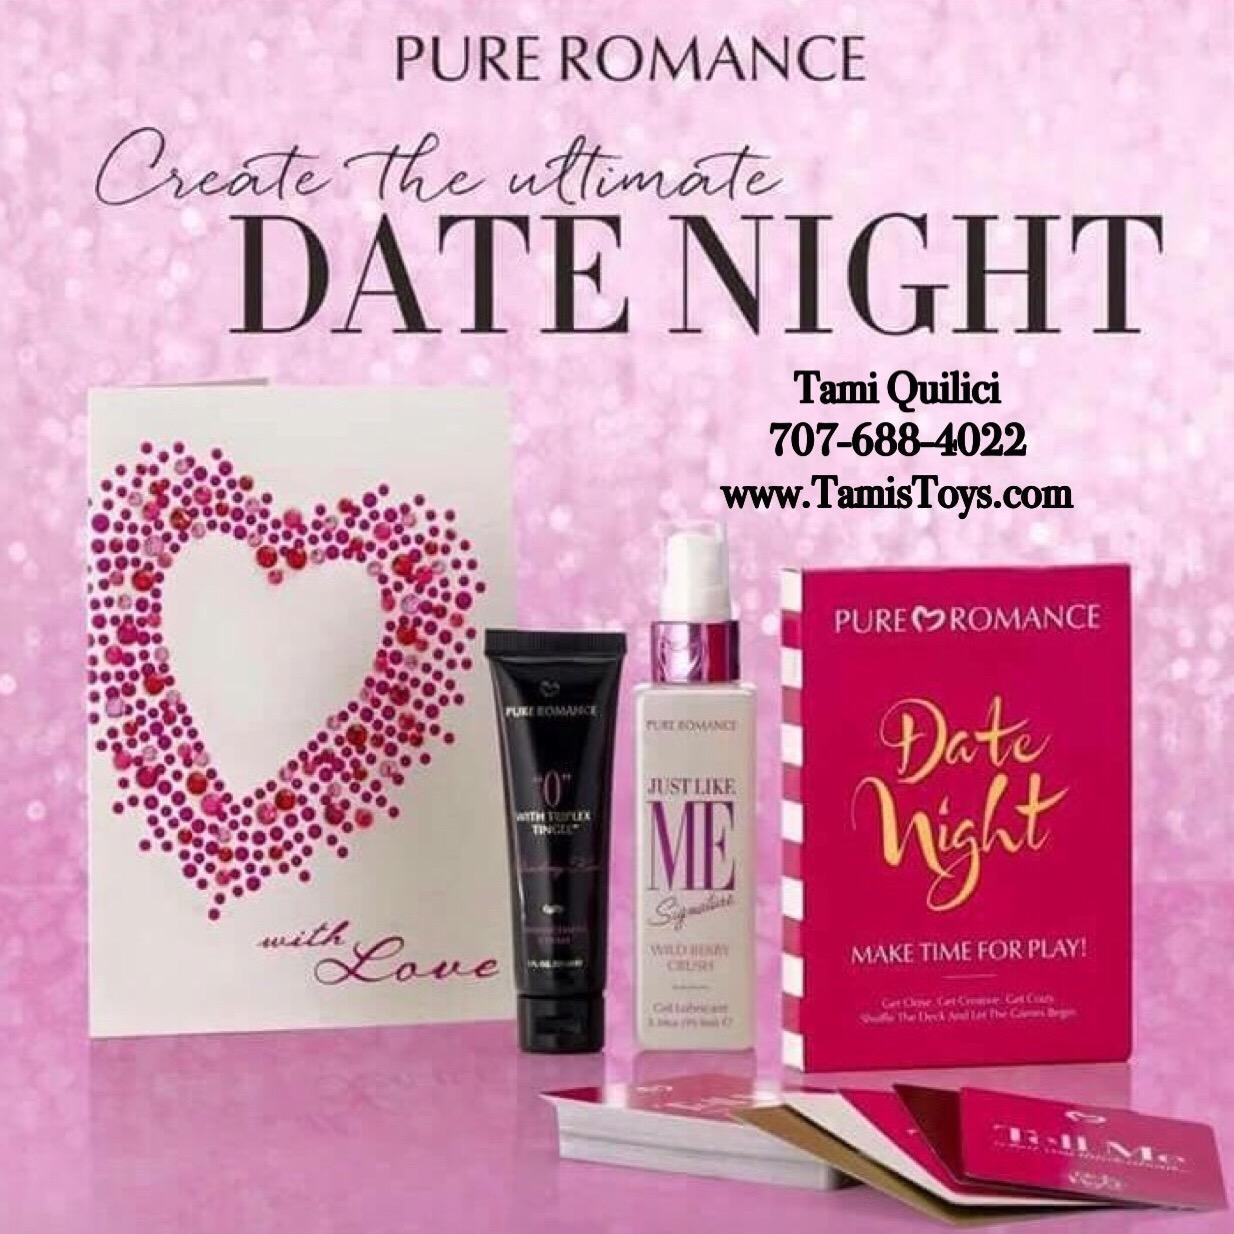 Pure Romance Invitations - WallsKid